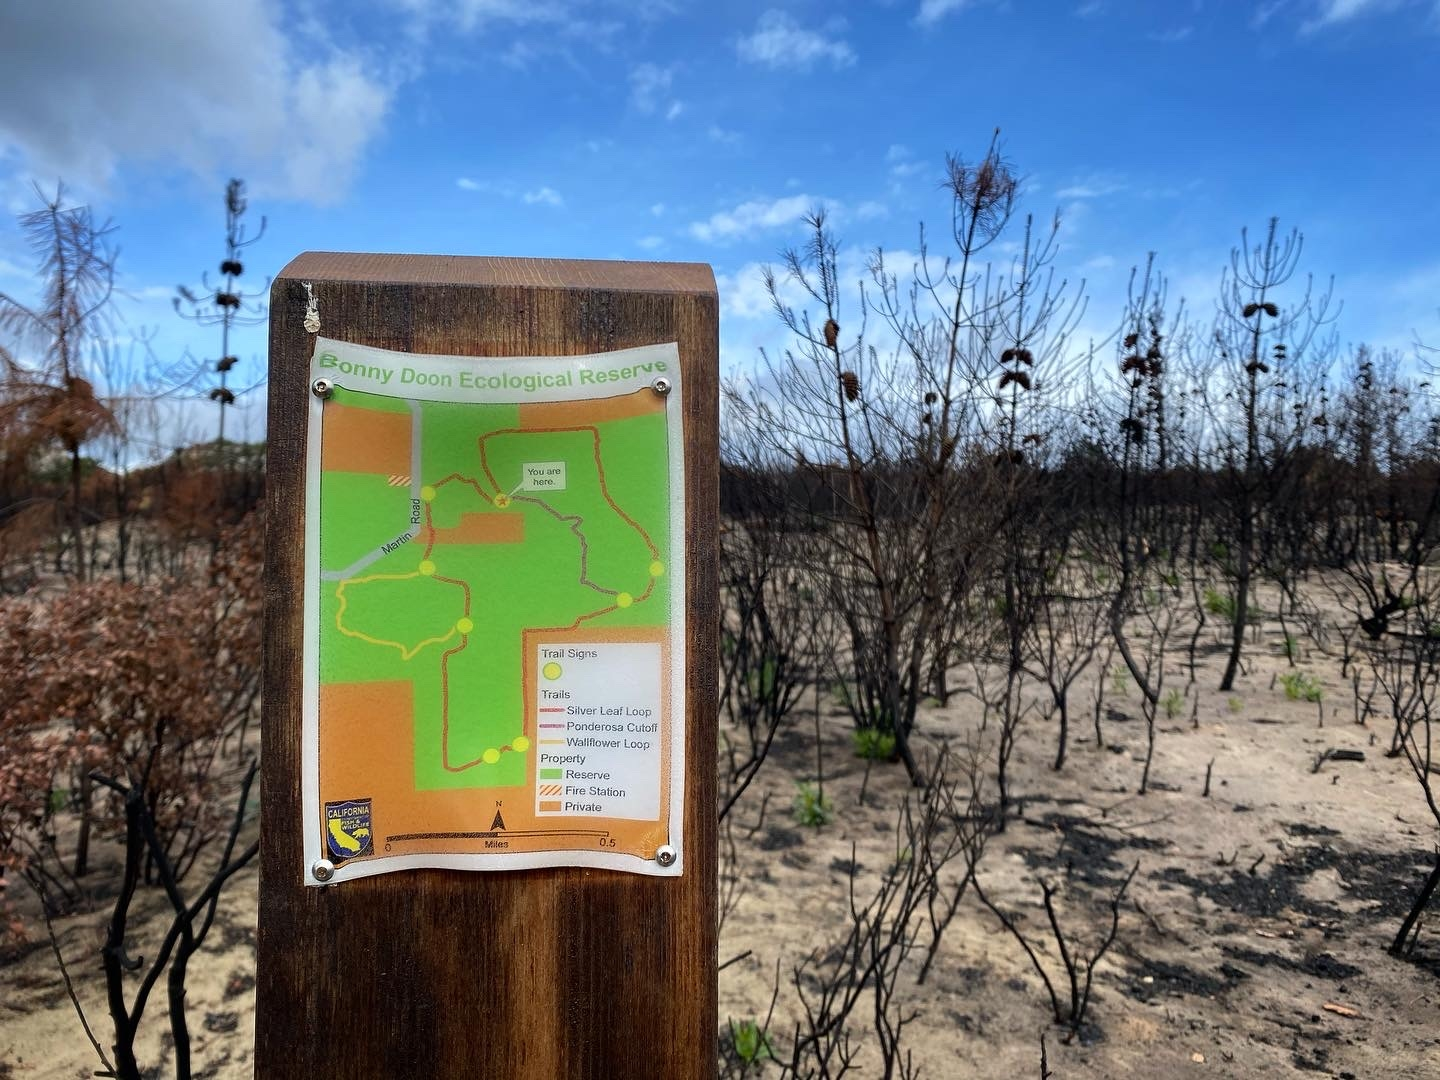 A wooden post holds a melted plastic map of the Reserve, with a burned landscape in the background.